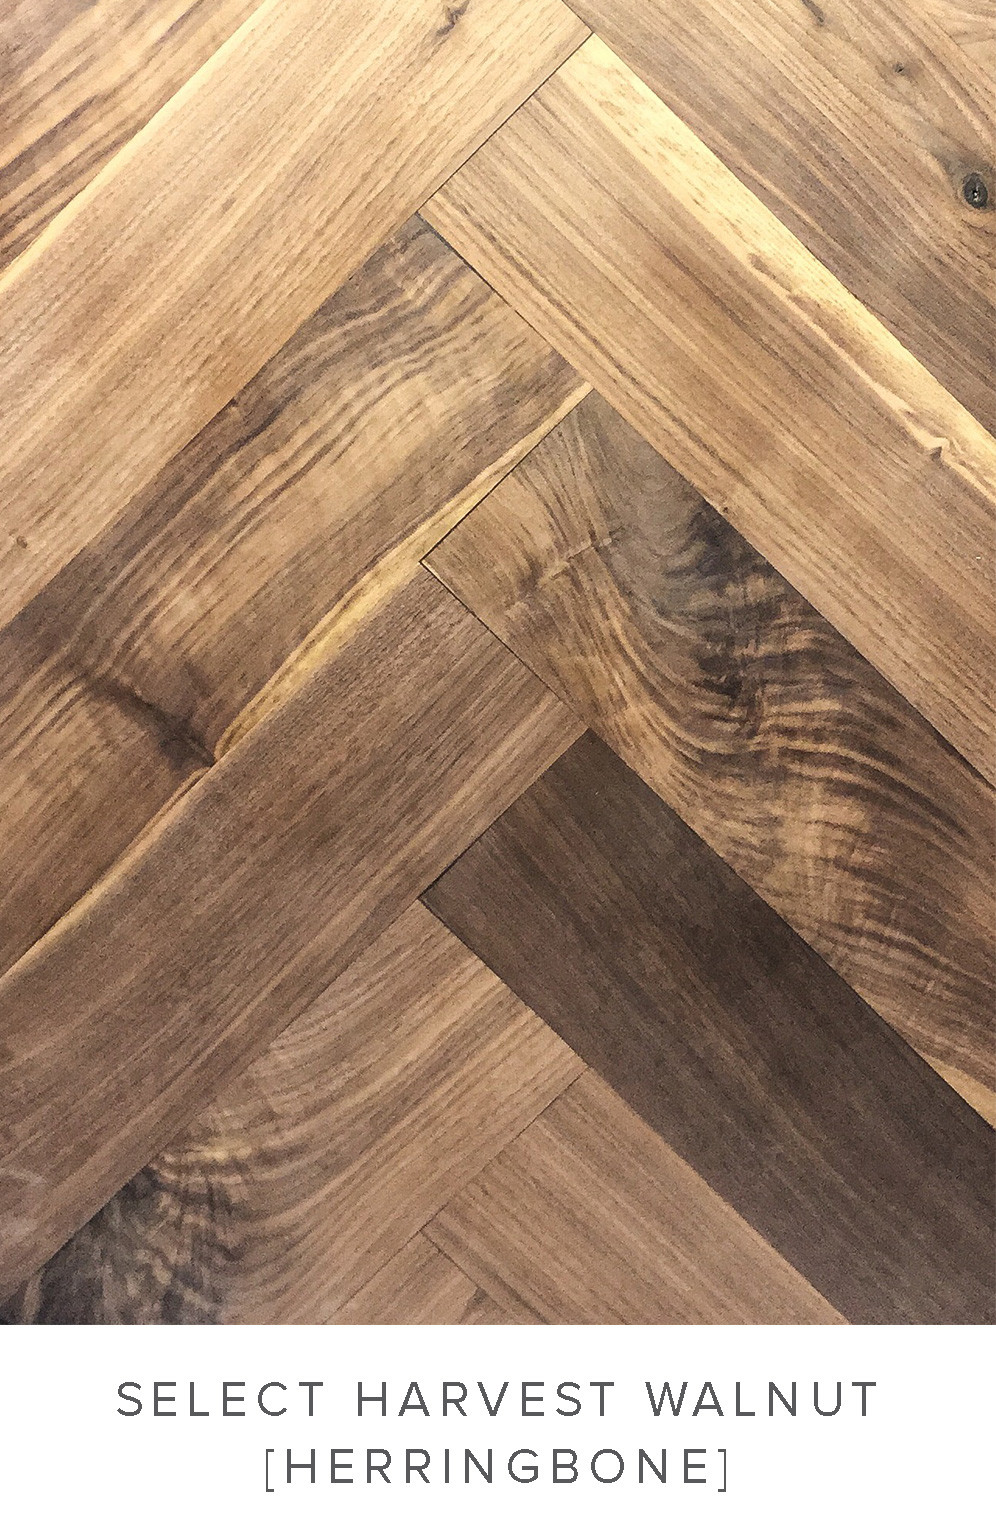 the woods company hardwood flooring of extensive range of reclaimed wood flooring all under one roof at the pertaining to select harvest walnut herringbone